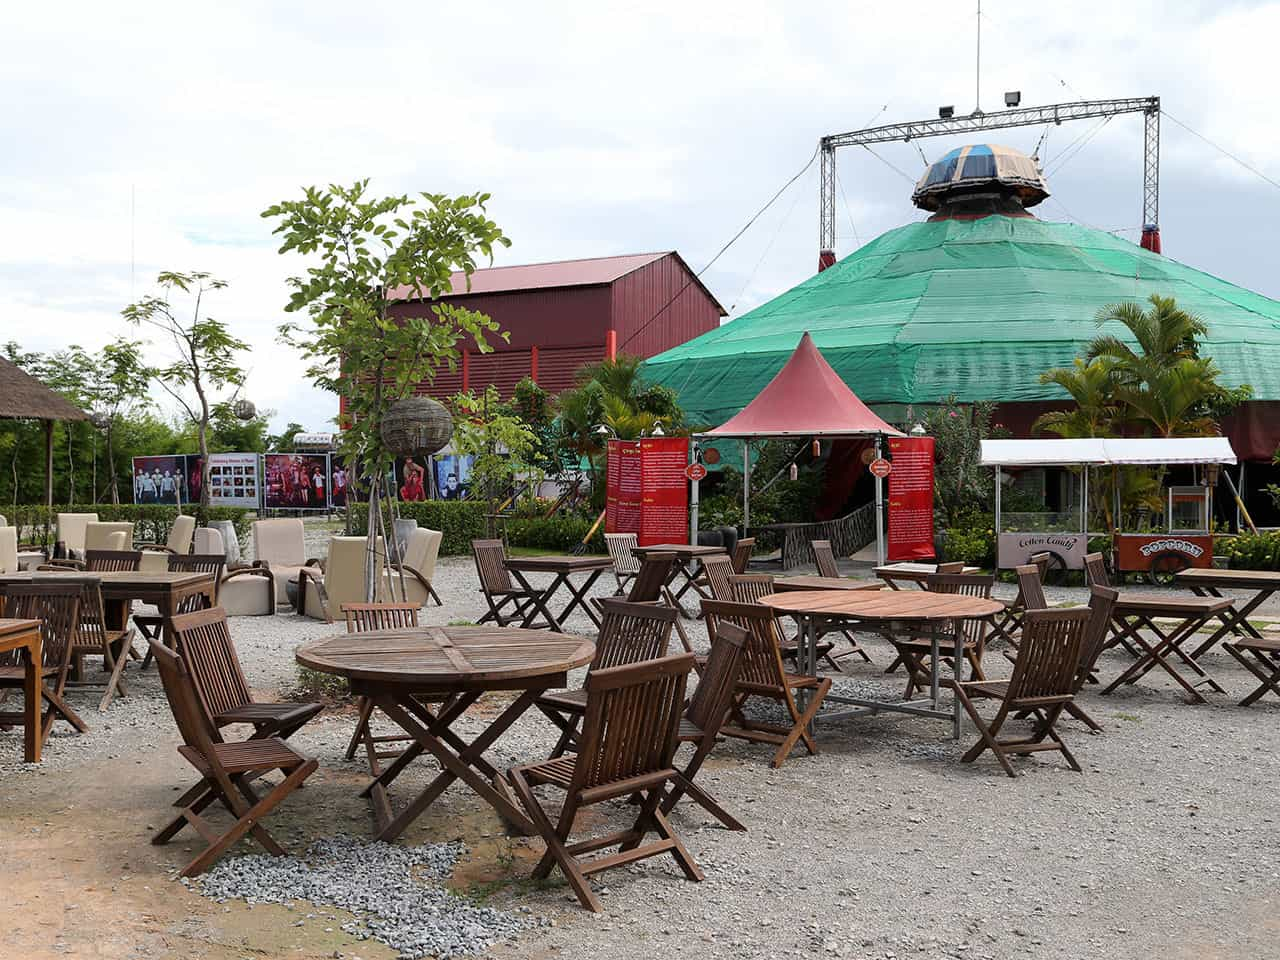 Phare, The Cambodian Circus - Venue